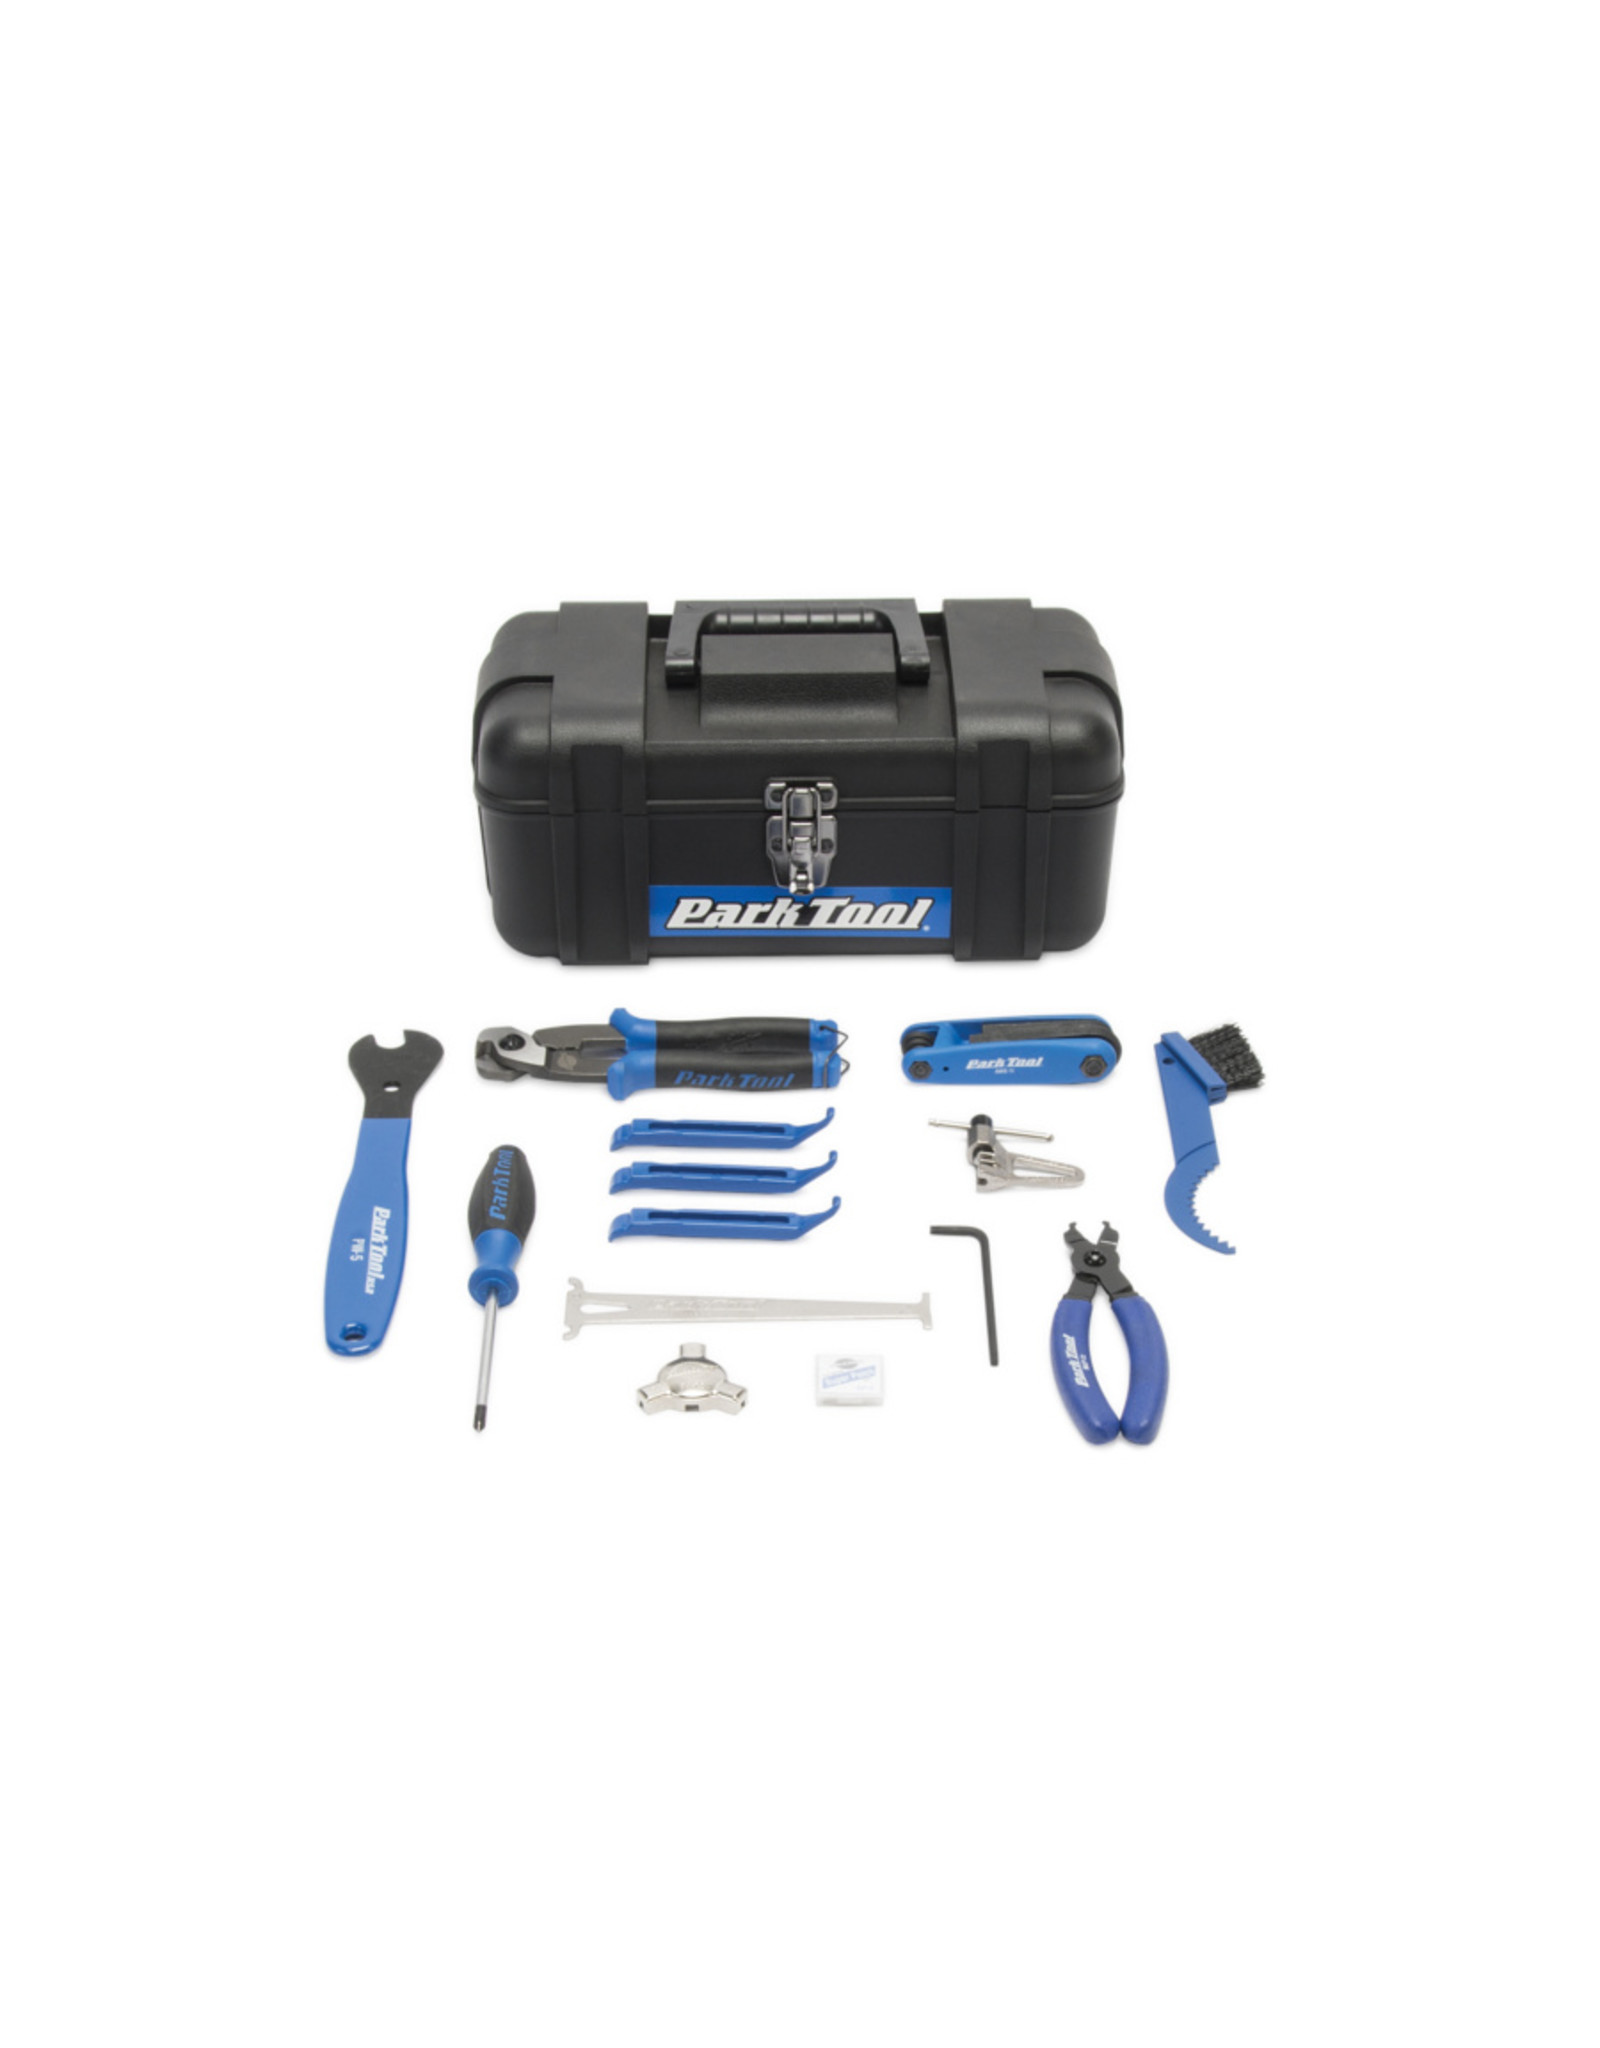 Park Tool Home Mechanic Starter Kit, SK-3